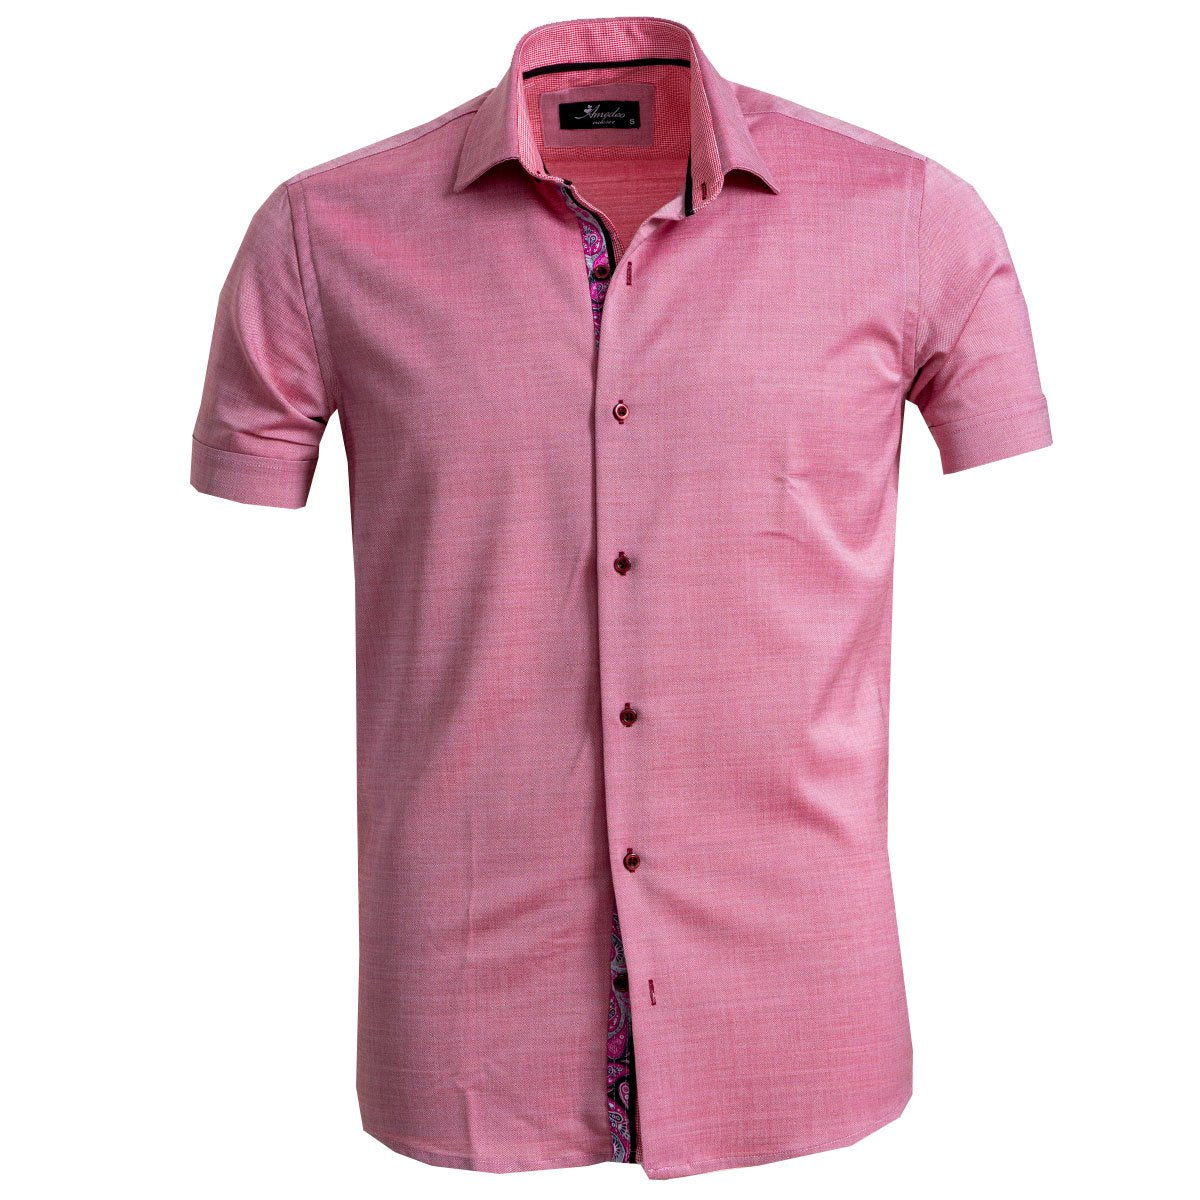 Men's Button down Tailor Fit Soft 100% Cotton Short Sleeve Dress Shirt Solid Pink Paisley casual And Formal - Amedeo Exclusive